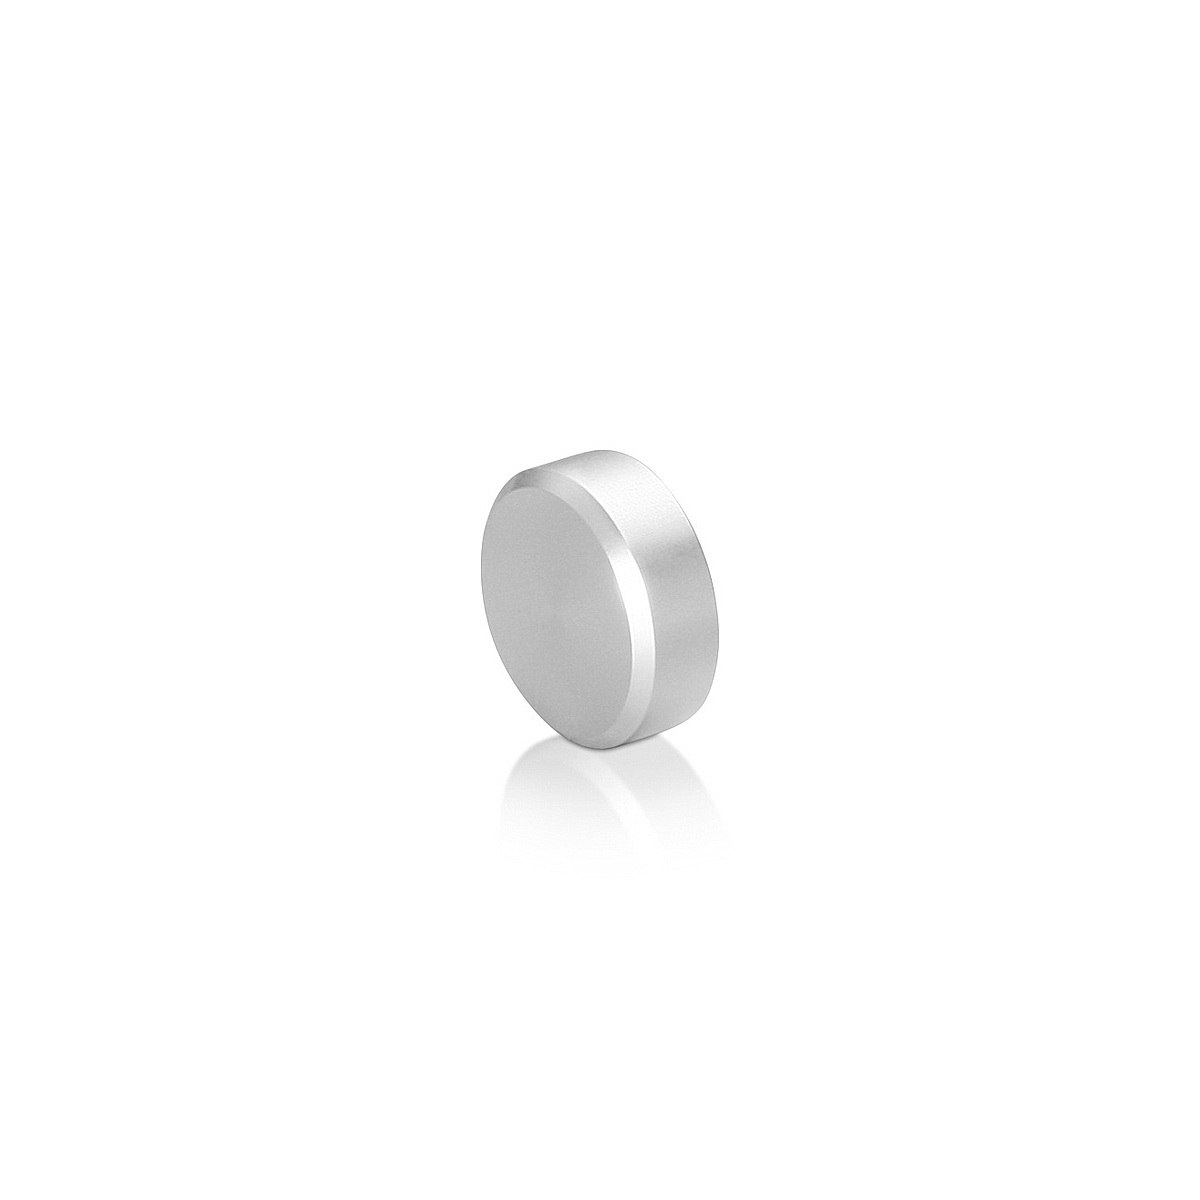 1/4-20 Threaded Caps Diameter: 3/4'', Height: 1/4'', Clear Anodized Aluminum